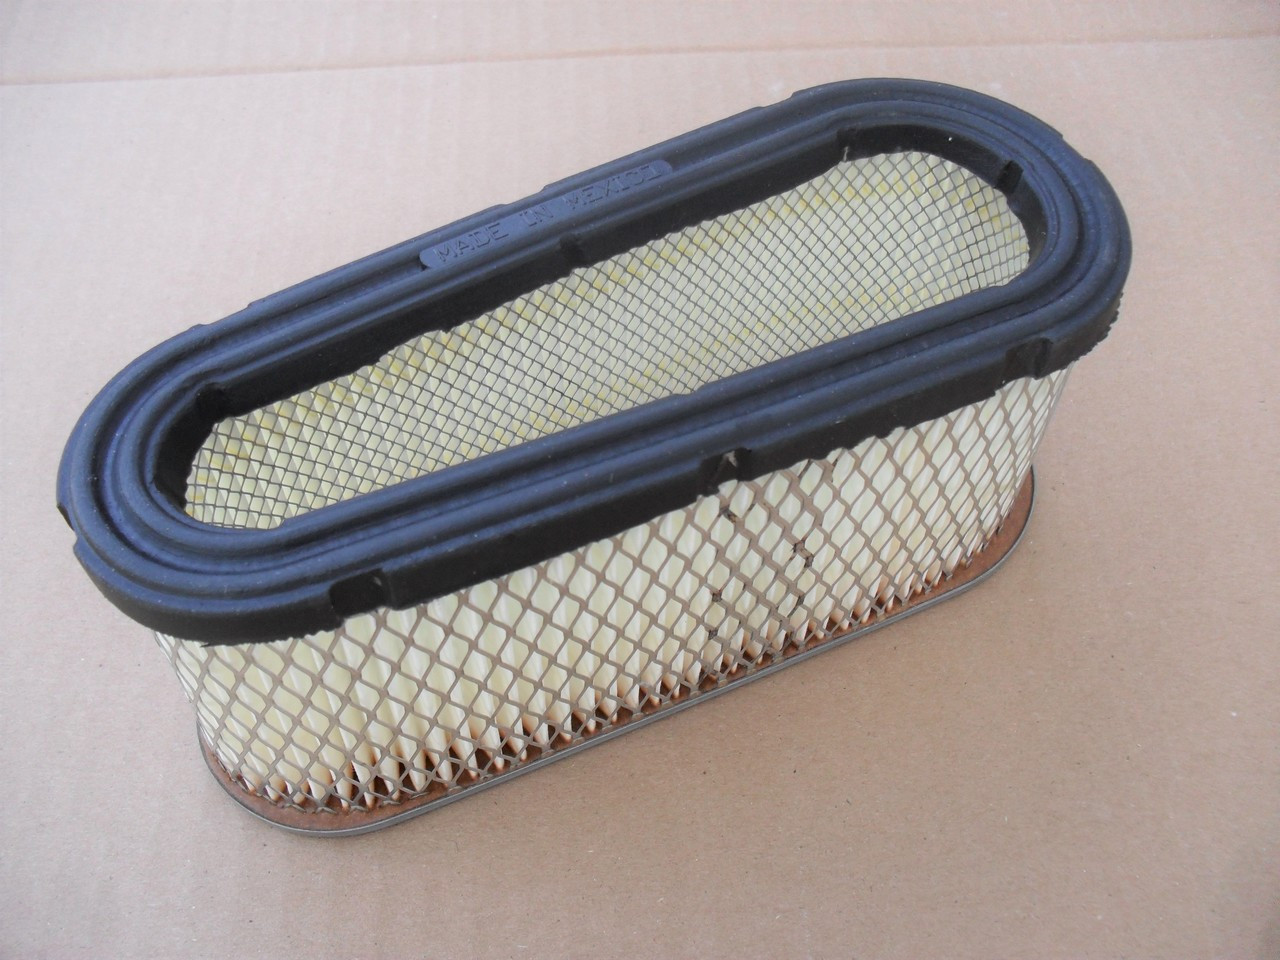 Air Filter for Briggs and Stratton 493909, 496894, 496894S, 4139, 5053, 5053B, 5053D, 5053H, 5053K &